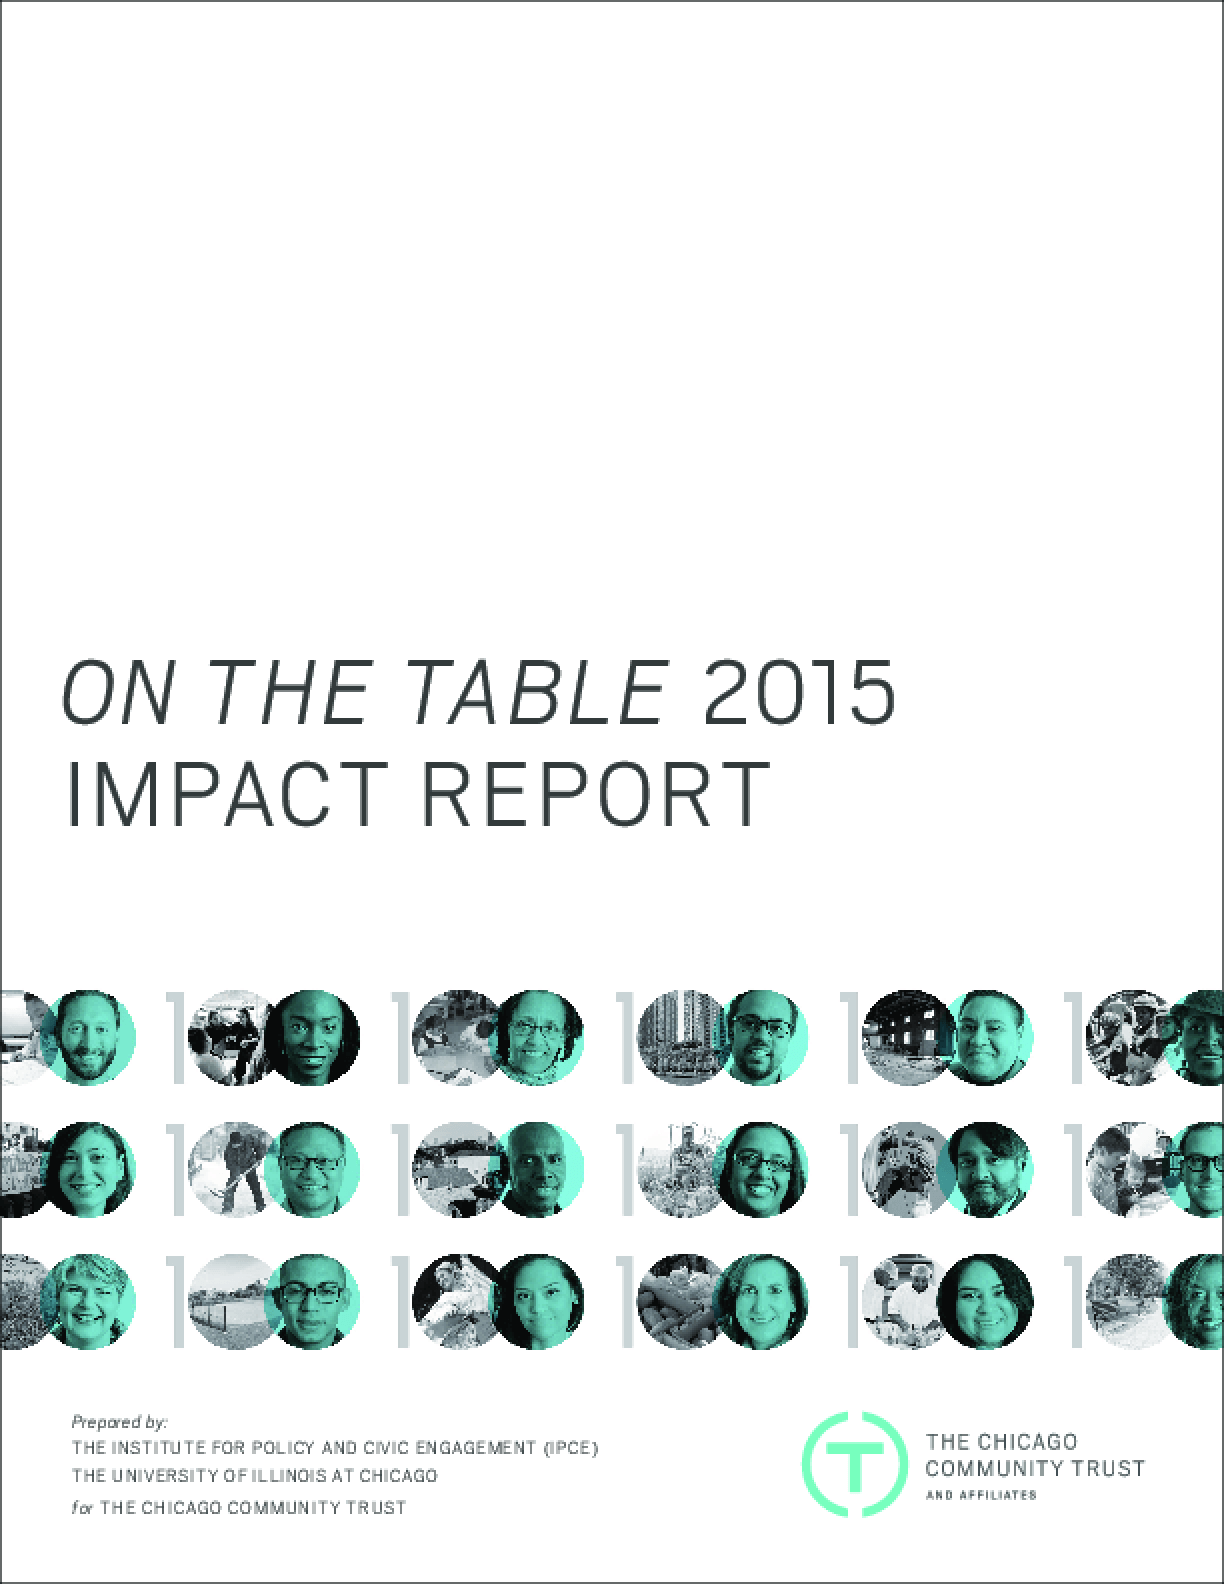 On the Table: 2015 Impact Report